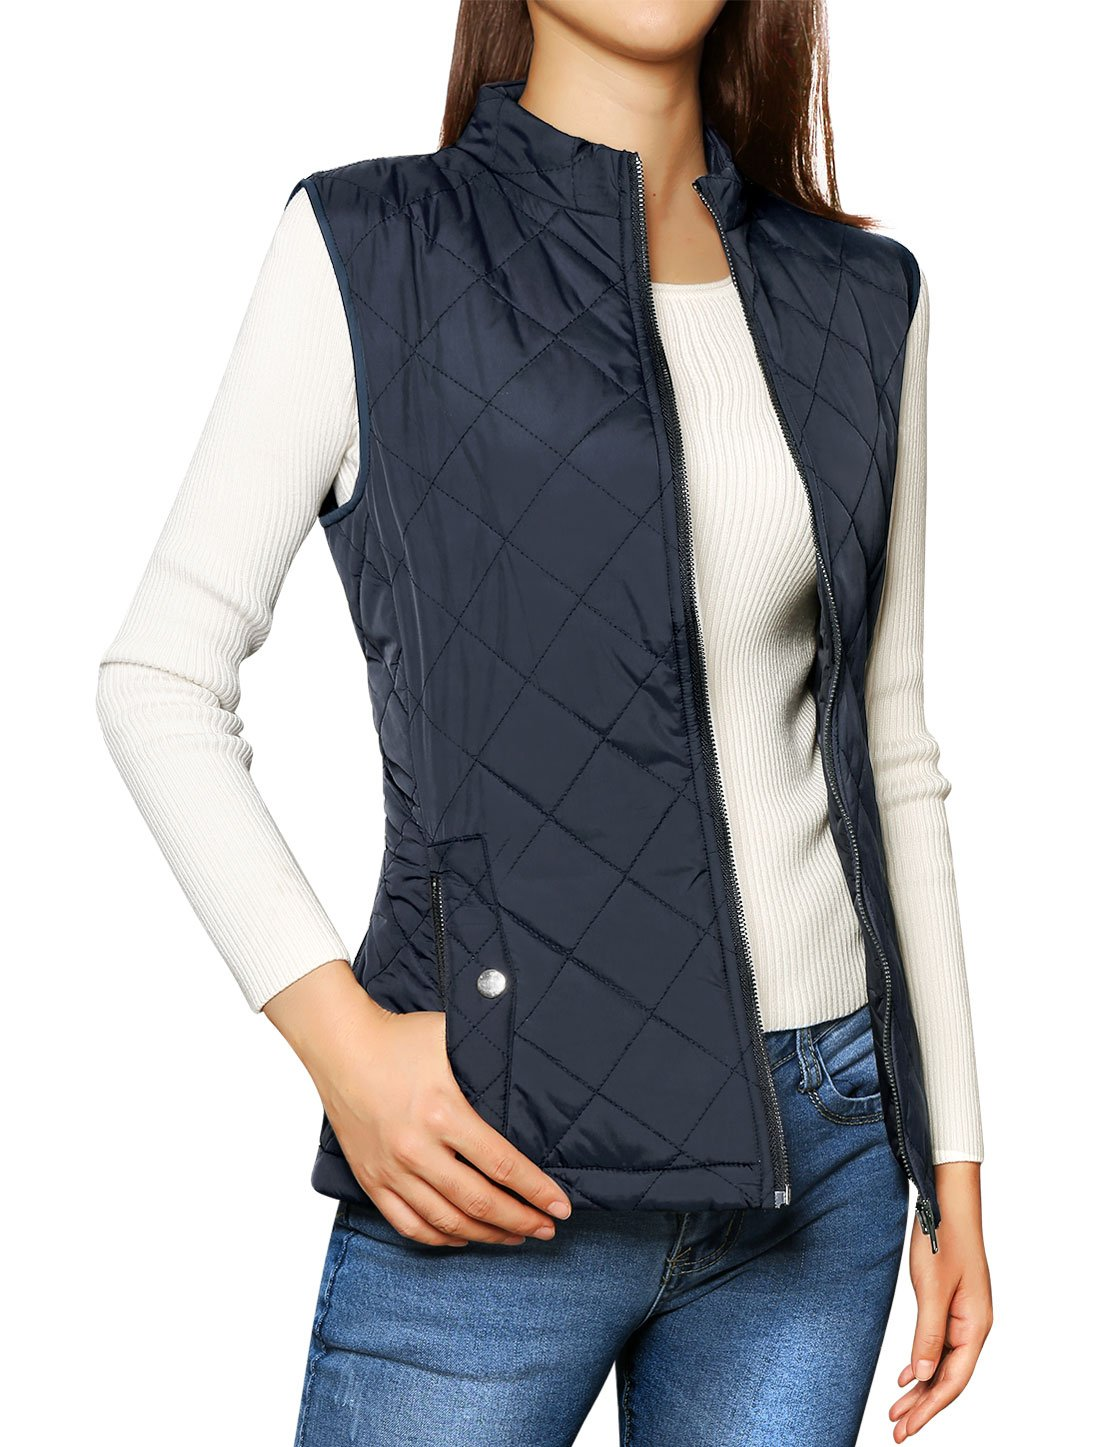 Allegra K Women's Stand Collar Lightweight Gilet Quilted Zip Vest Dark Blue L (US 14)